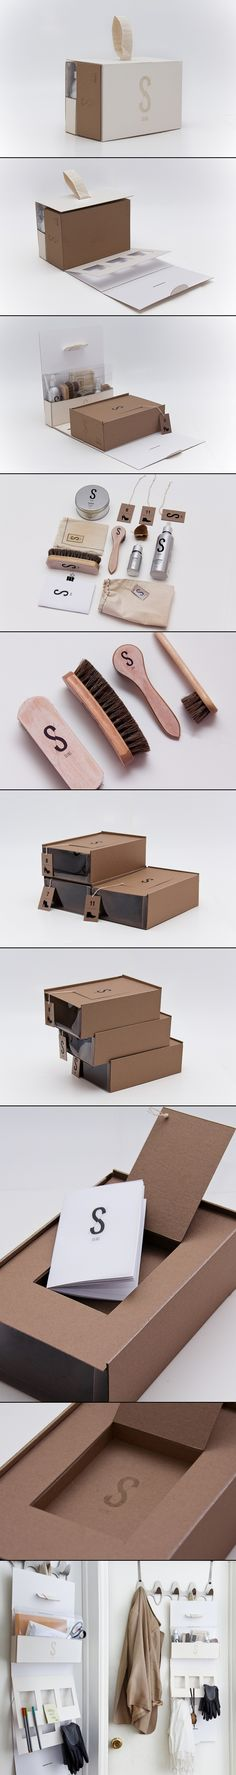 SKINS Shoe #Packaging #Design  |  Jiani Lu so cool makes me want to buy shoes you have to polish : ) PD a top #2014 team pin